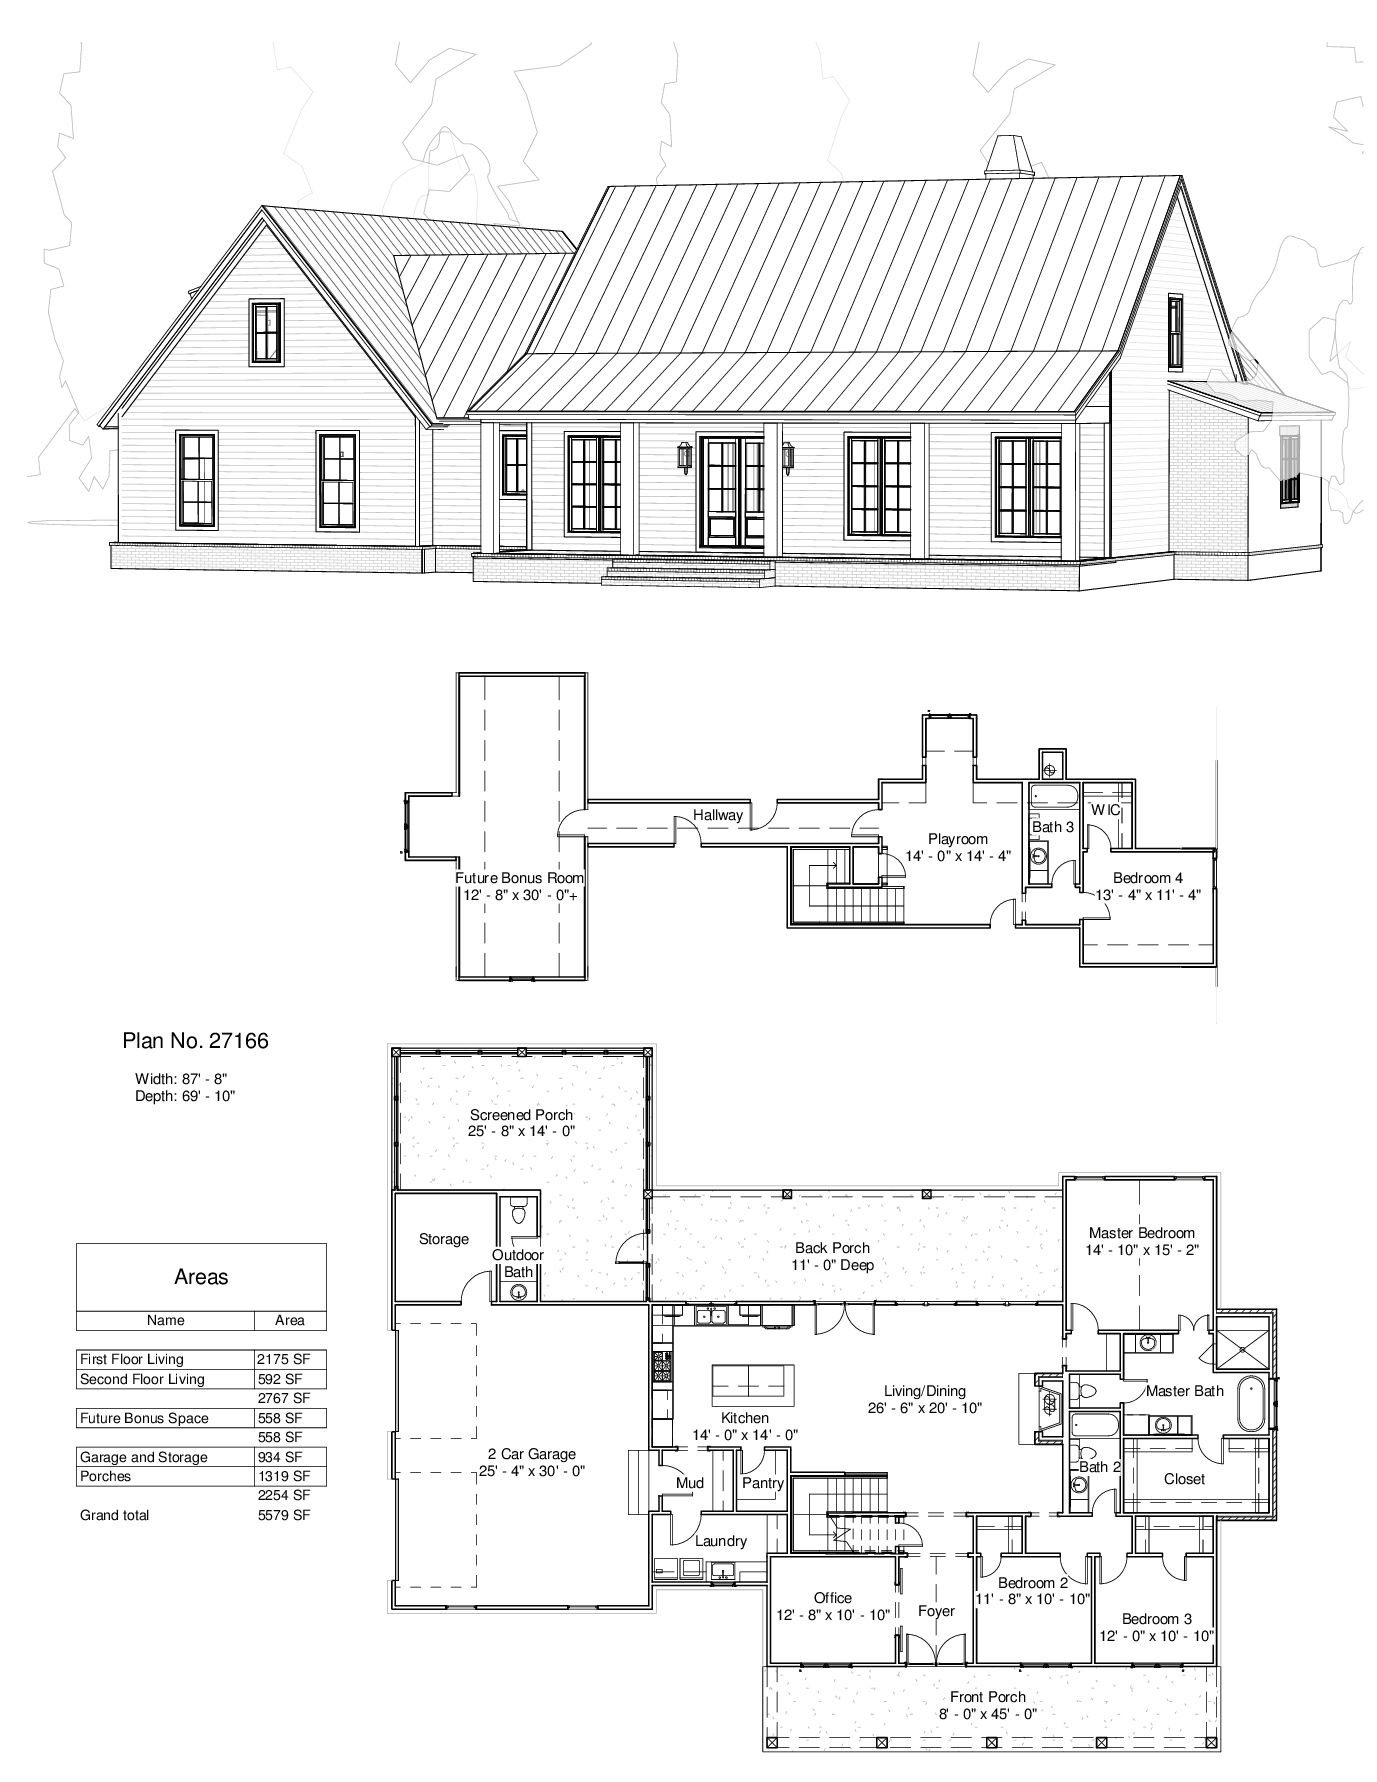 Plan 27166 Design Studio Back Screened Porch Left Converted To Workshop Move Laundry To Be Ranch House Plans Farmhouse Style House Plans New House Plans